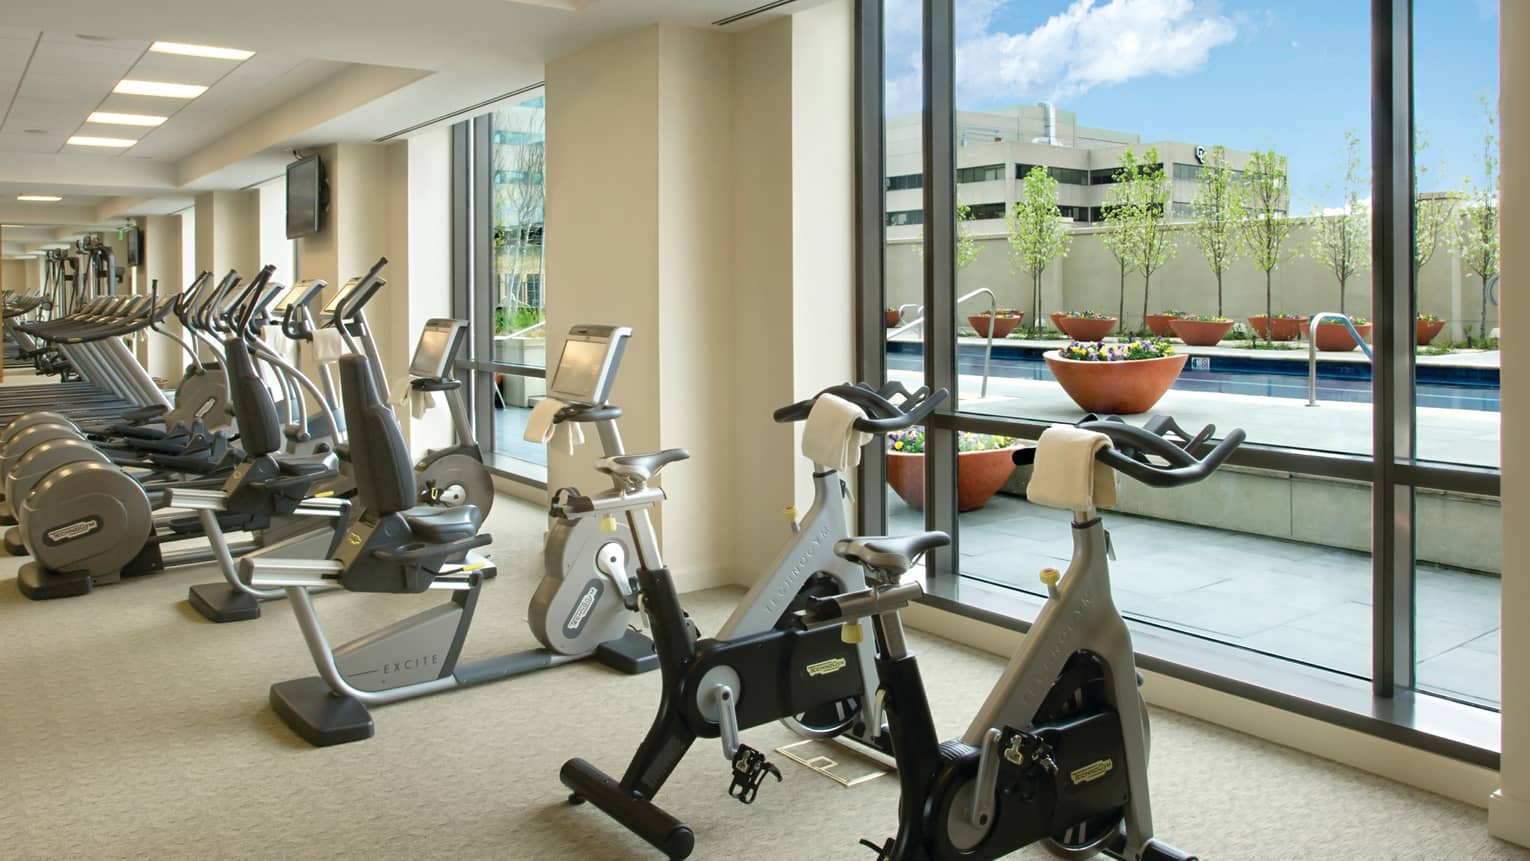 Fitness Centre cardio machines lined up against sunny floor-to-ceiling windows